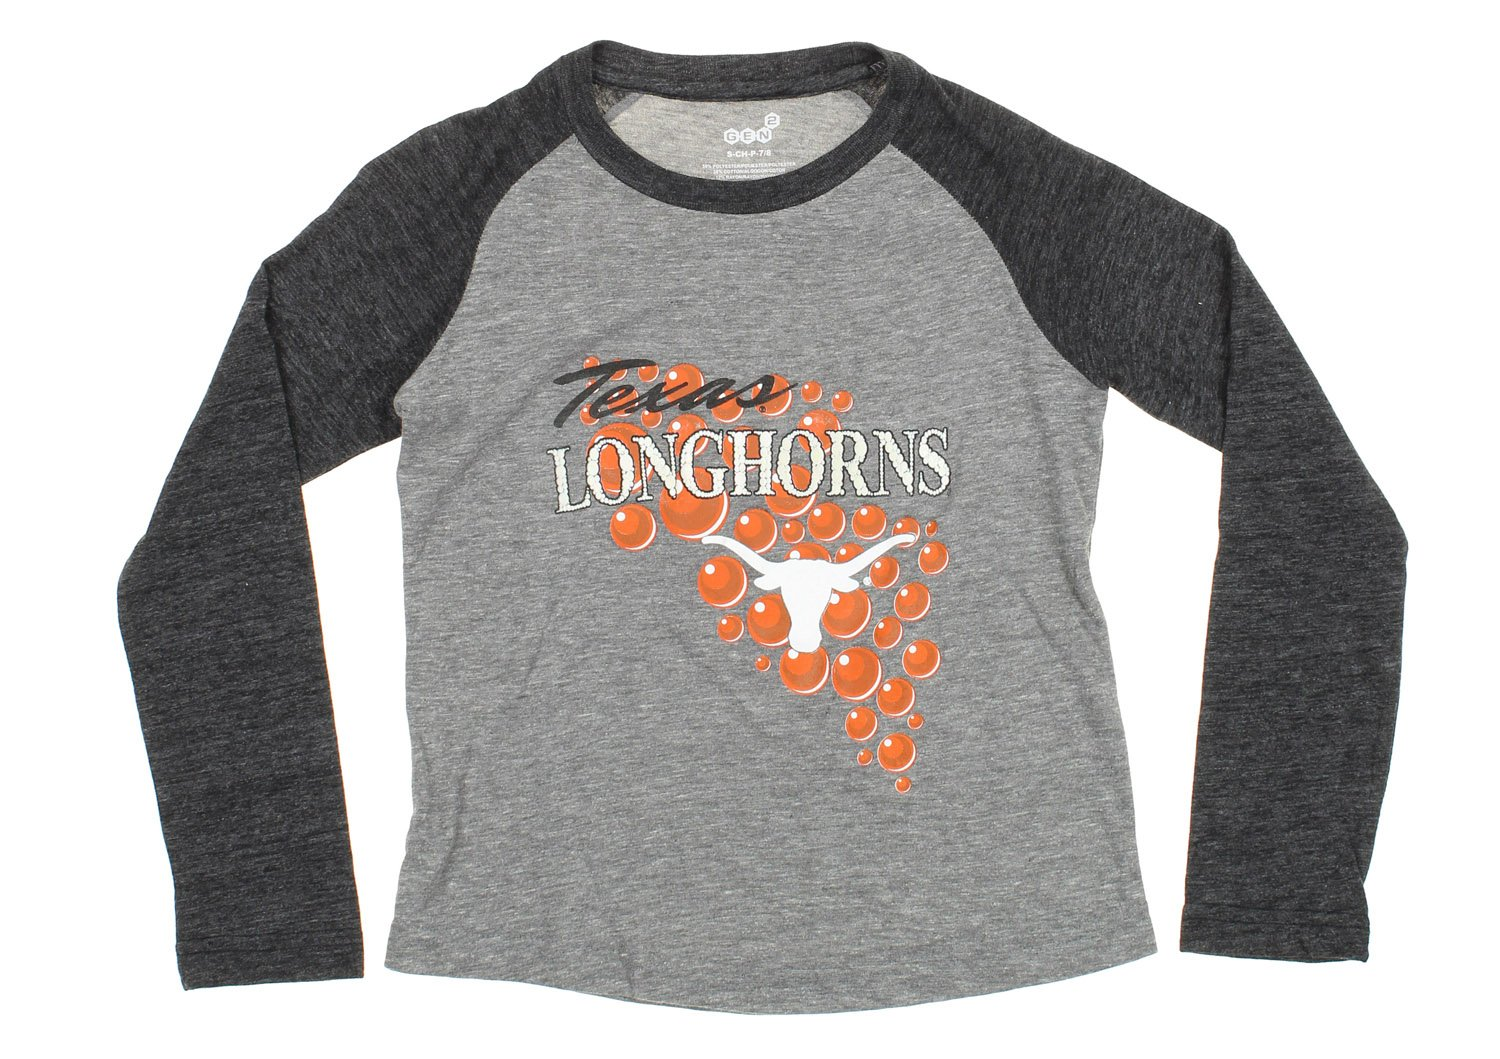 公式 NCAAテキサスLonghorns Youth Girls母のパール長袖Tシャツ、グレー Medium (10 (10/12) B06XTBTDBD/12) Youth B06XTBTDBD, タガワグン:41e5c099 --- a0267596.xsph.ru